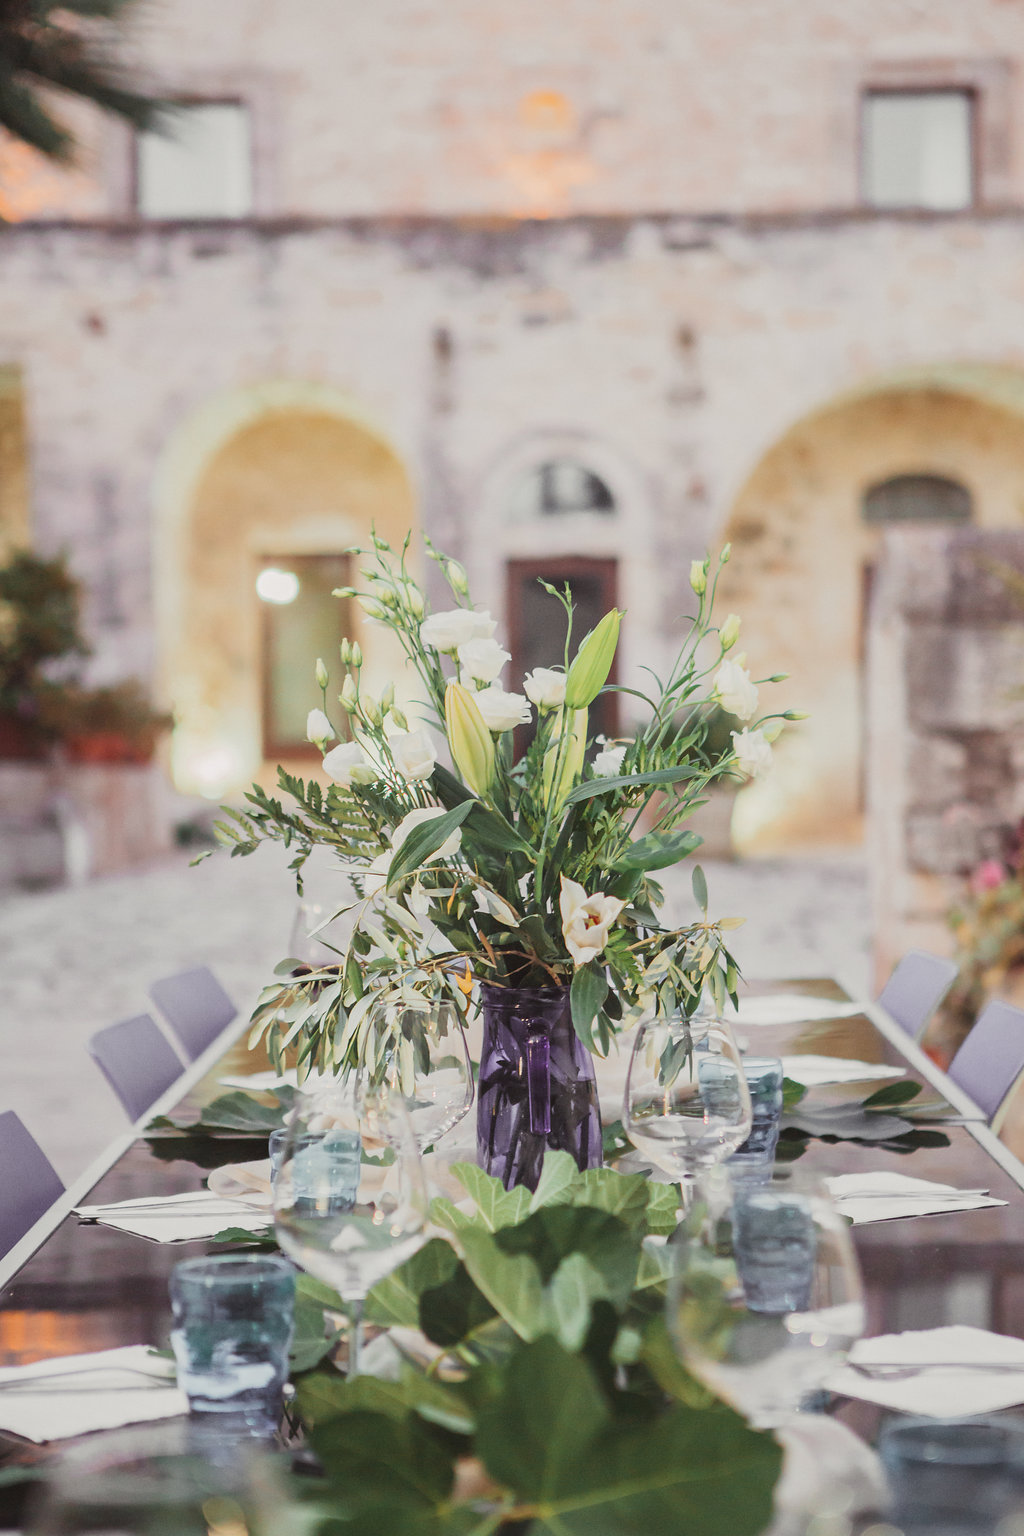 travellur_watercolours_sicily_slow_travel_retreat_creative_styling